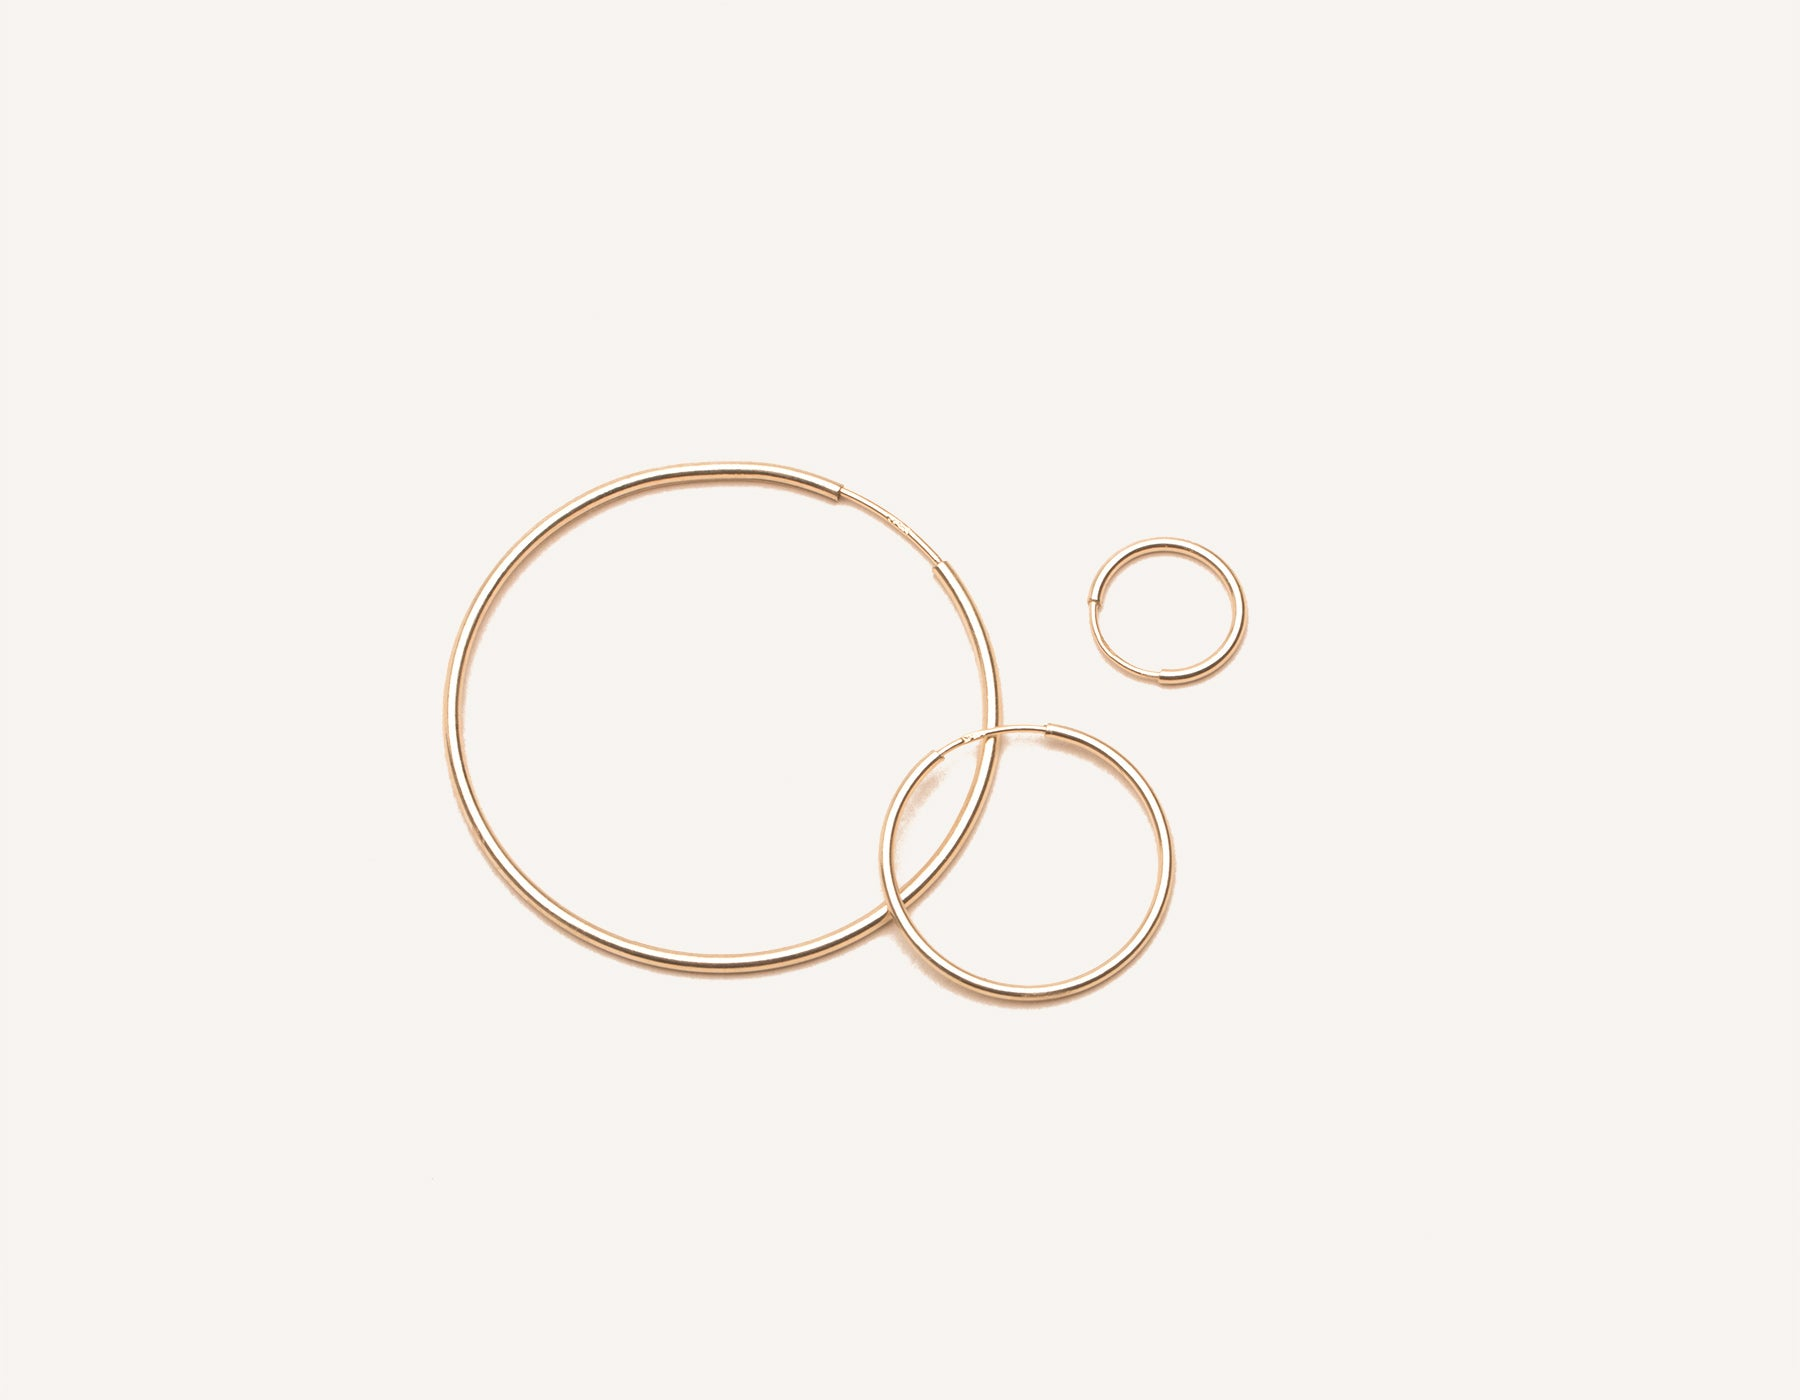 modern minimalist Lightweight Hoop earrings 14k solid gold Vrai & Oro sustainable jewelry, 14K Rose Gold